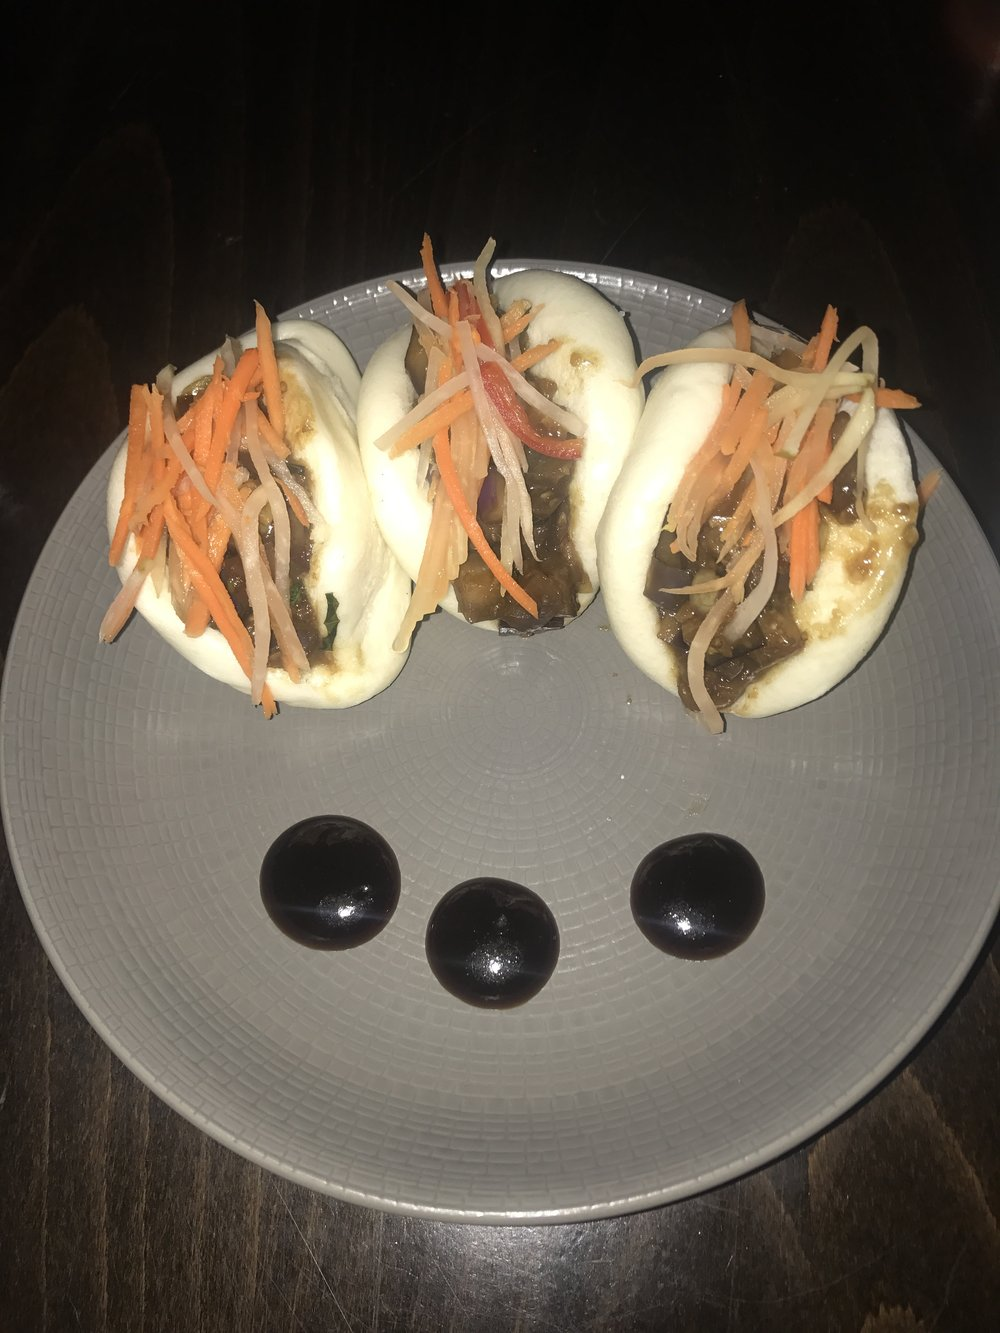 Eggplant bao buns! These were supper tasty, you can hardly even tell there is eggplant at all, I would get these again.